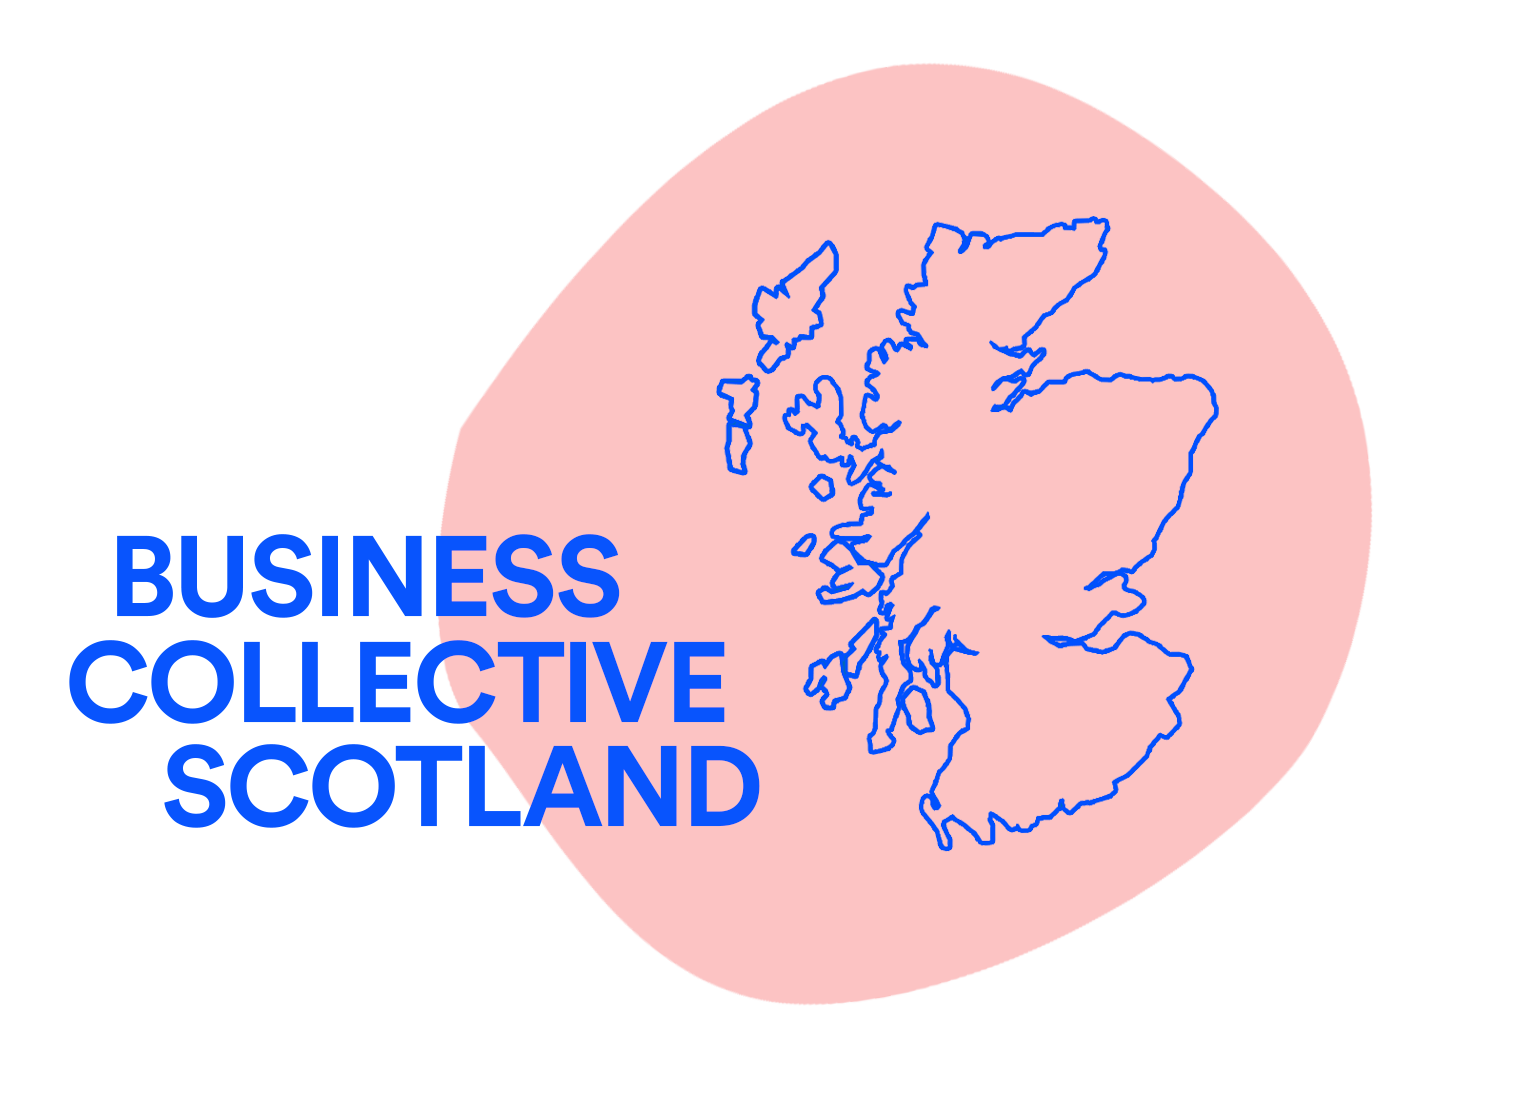 scottish business collective logo.